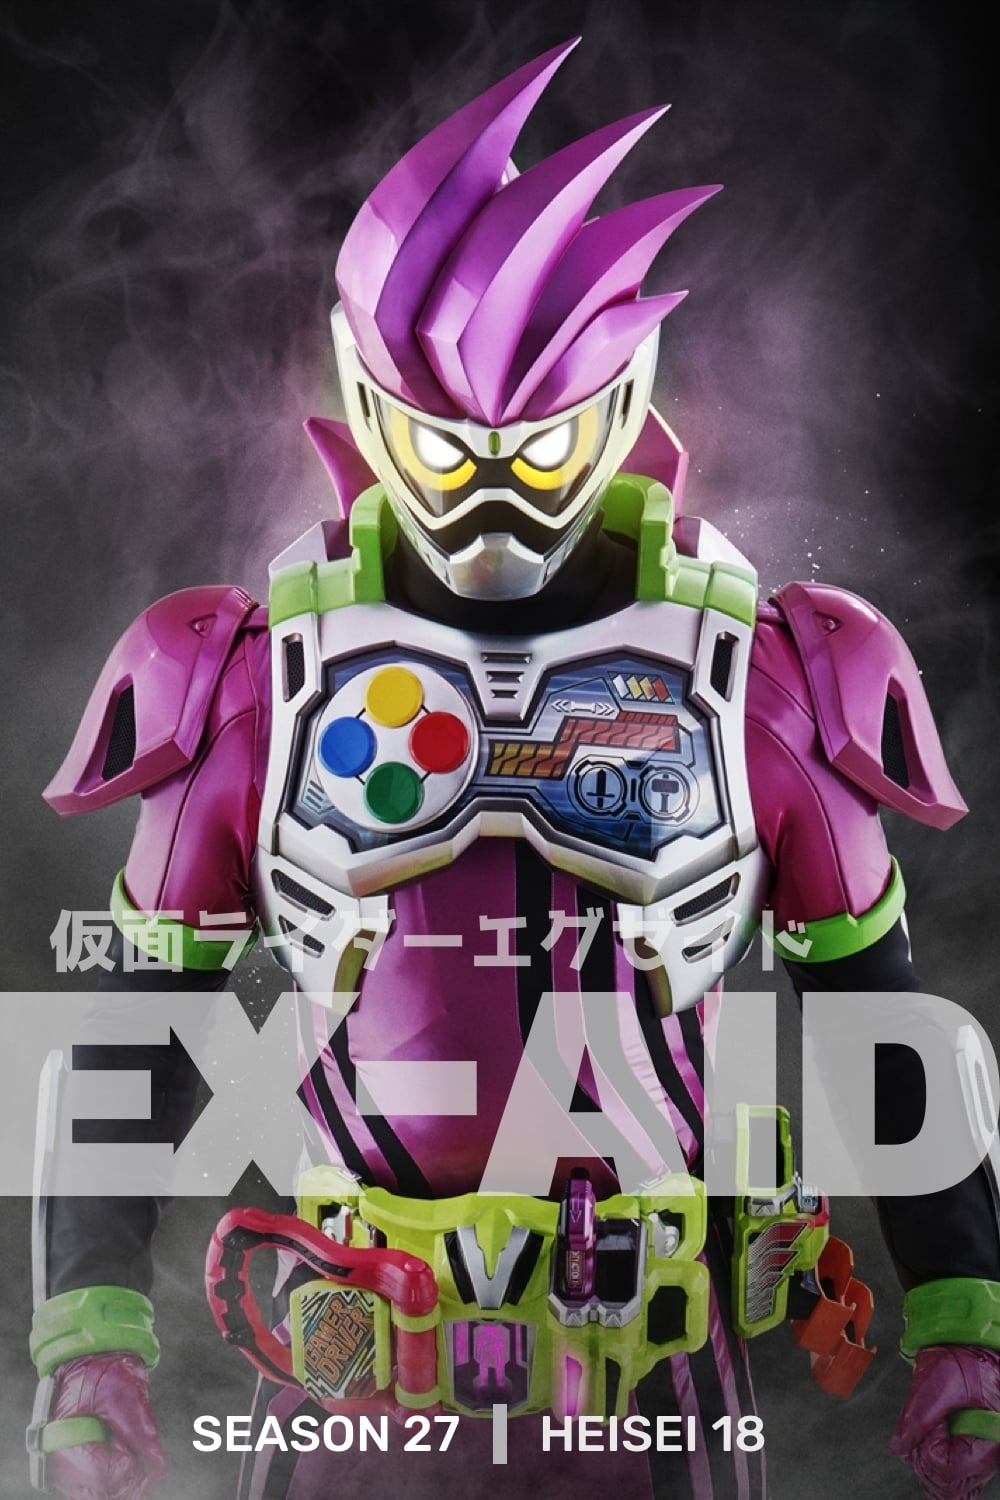 Kamen Rider - Season 21 Episode 1 : Medal, Underwear, Mysterious Arm Season 27